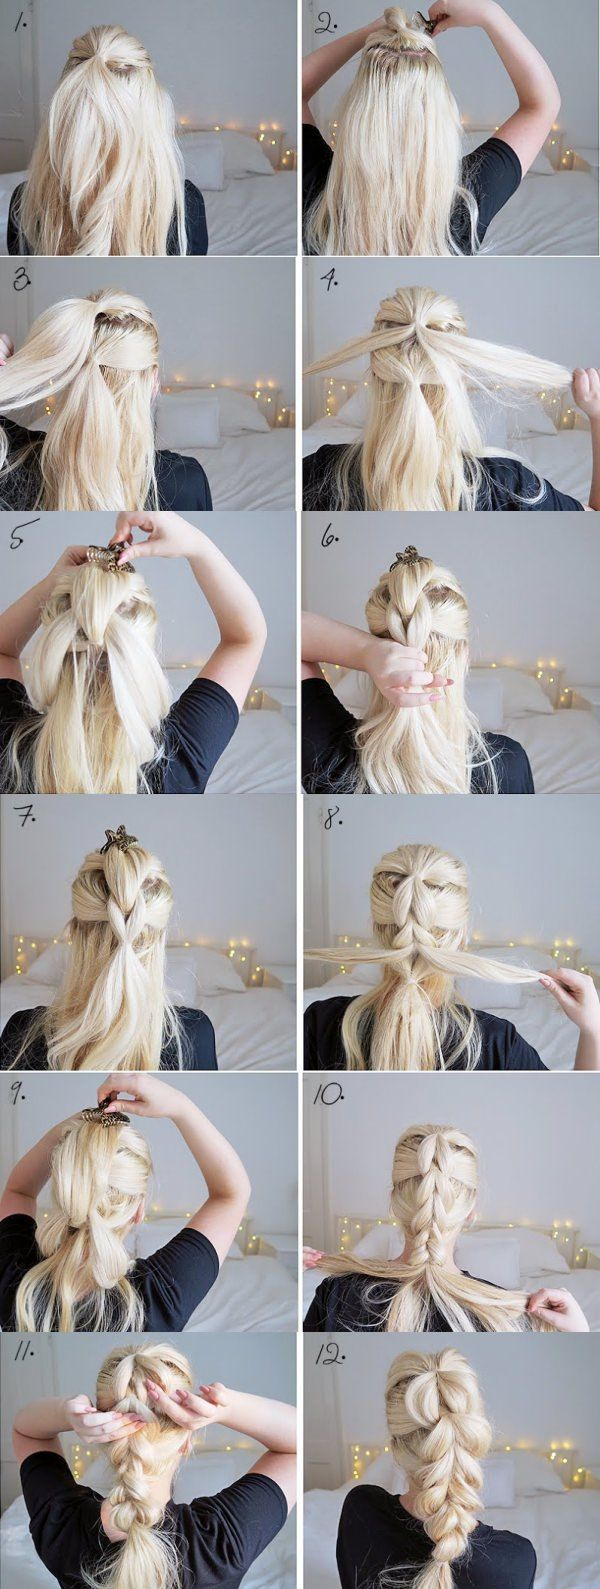 hairstyles that can be done in minutes hair style makeup and